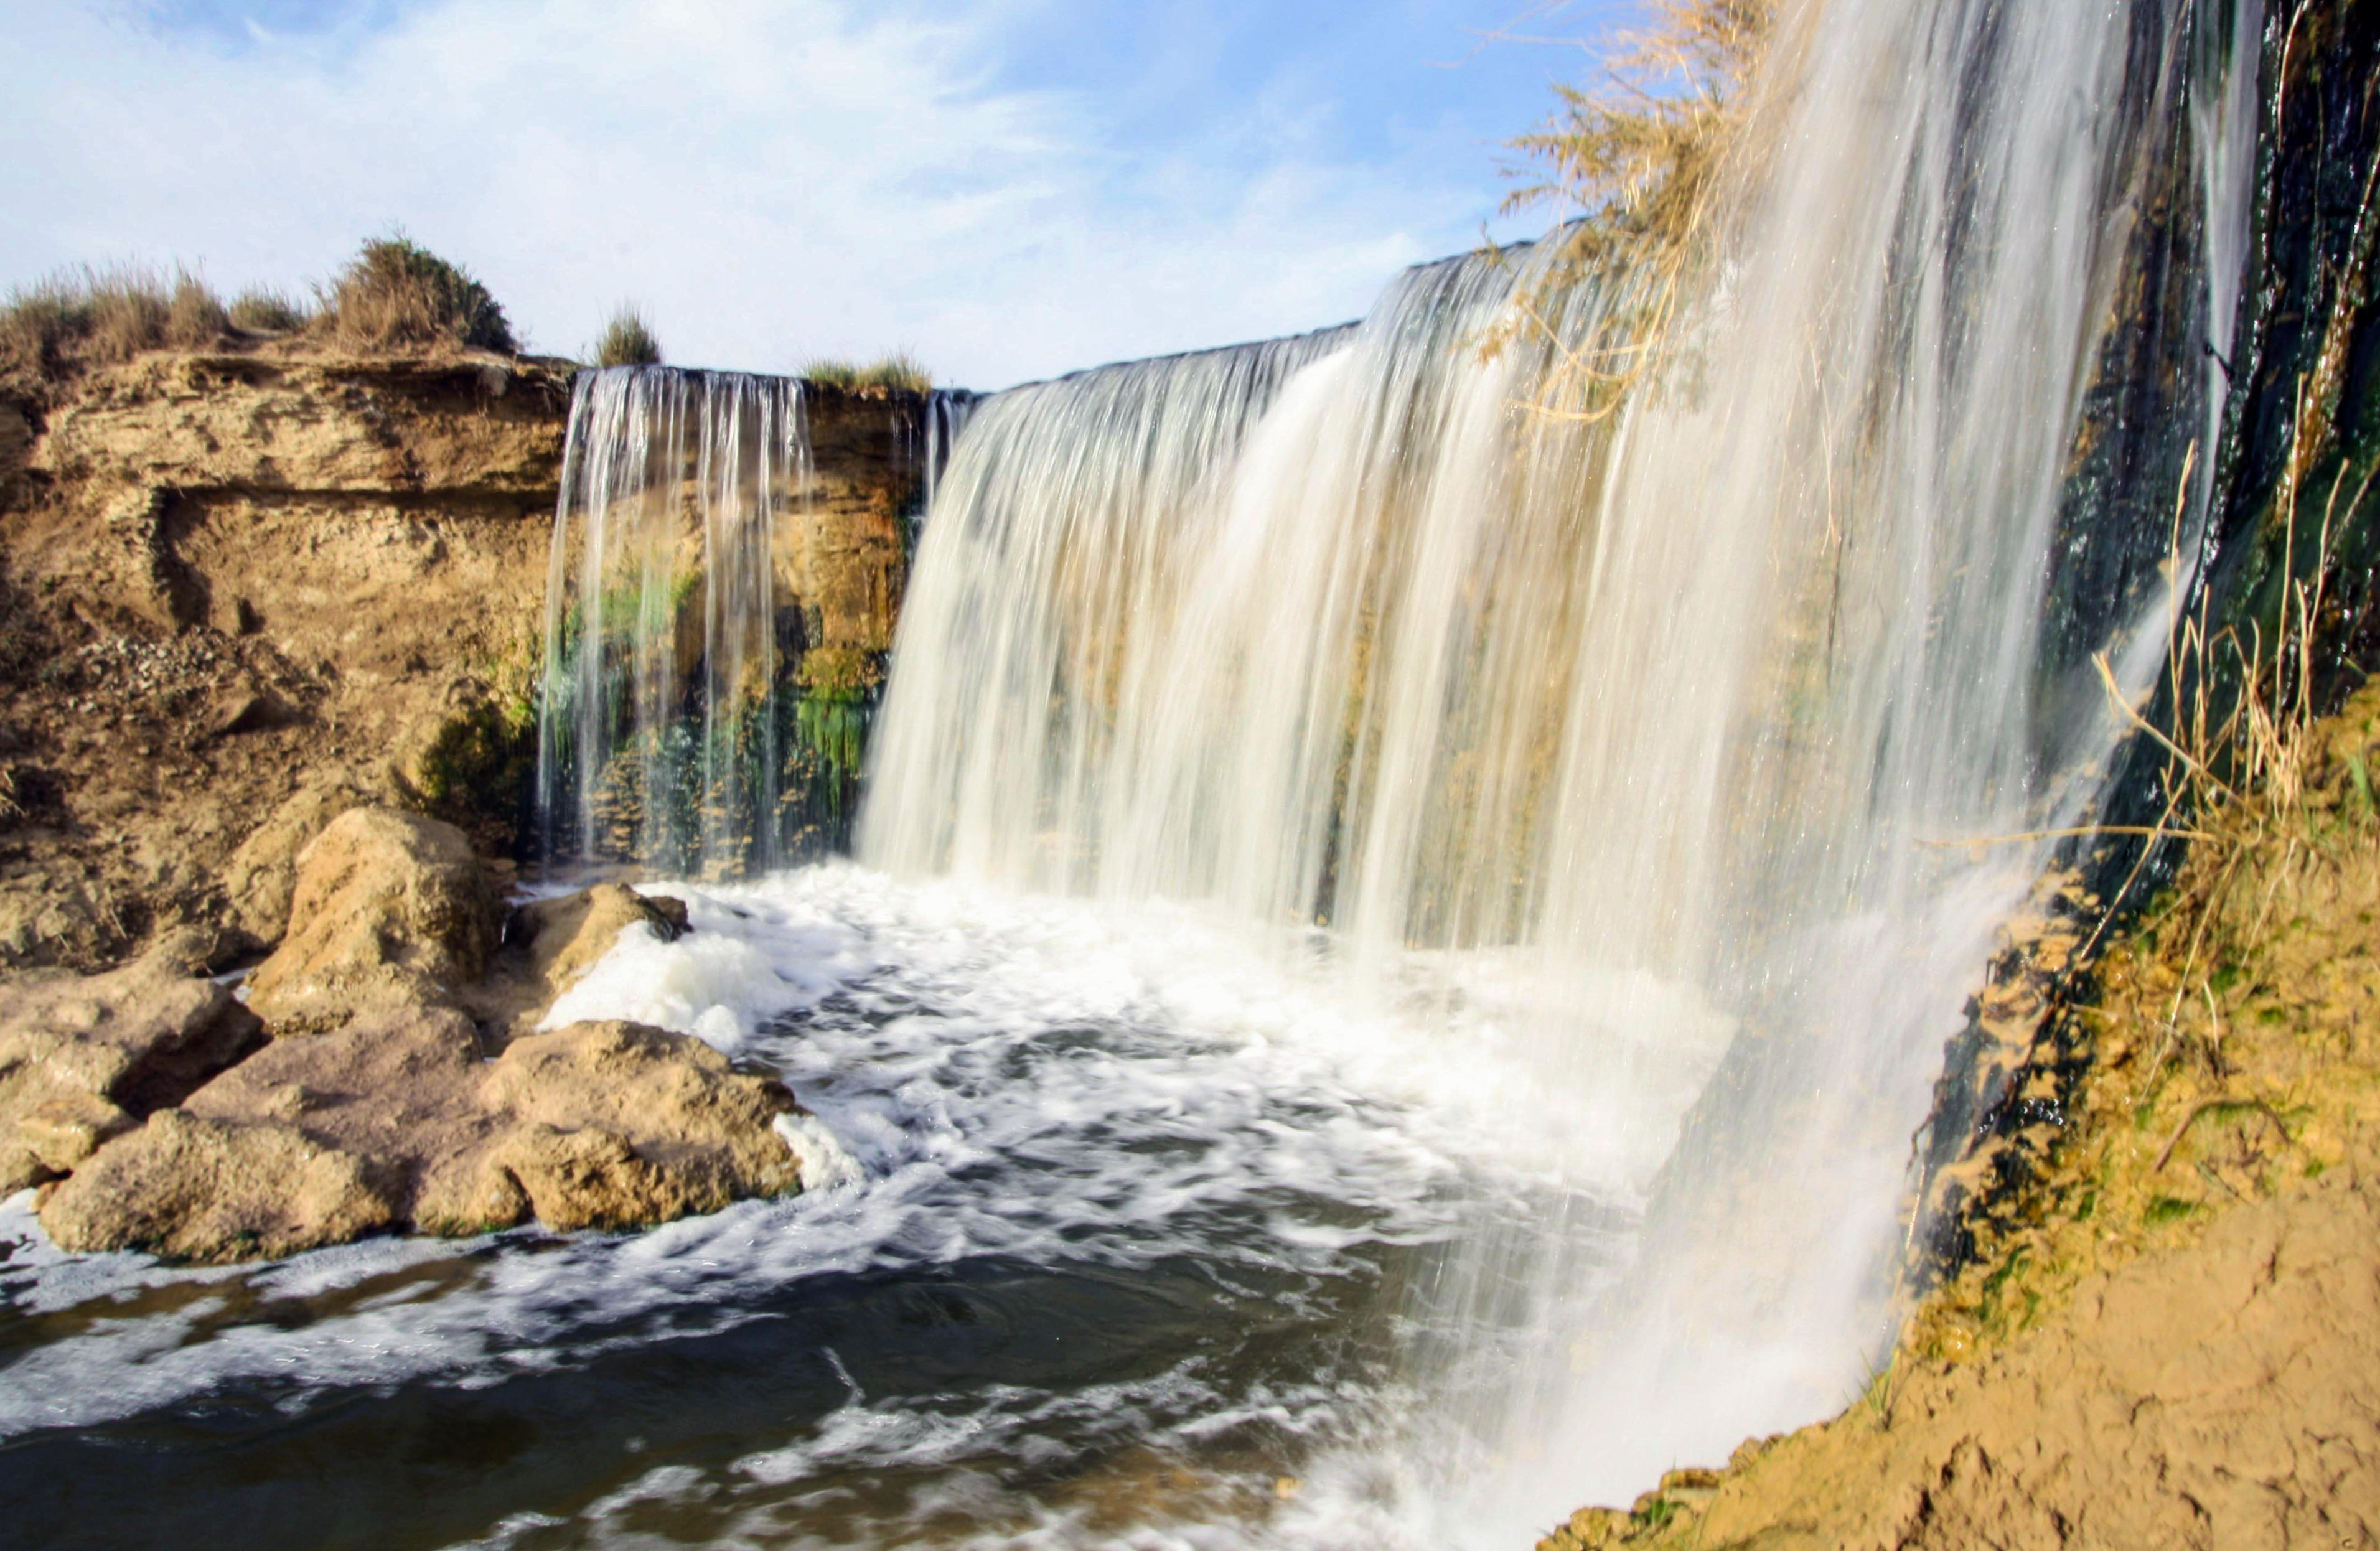 One side of Fayoum's famous waterfalls situated in Wady al-Rayan protectorate. Credit: Enas El Masry